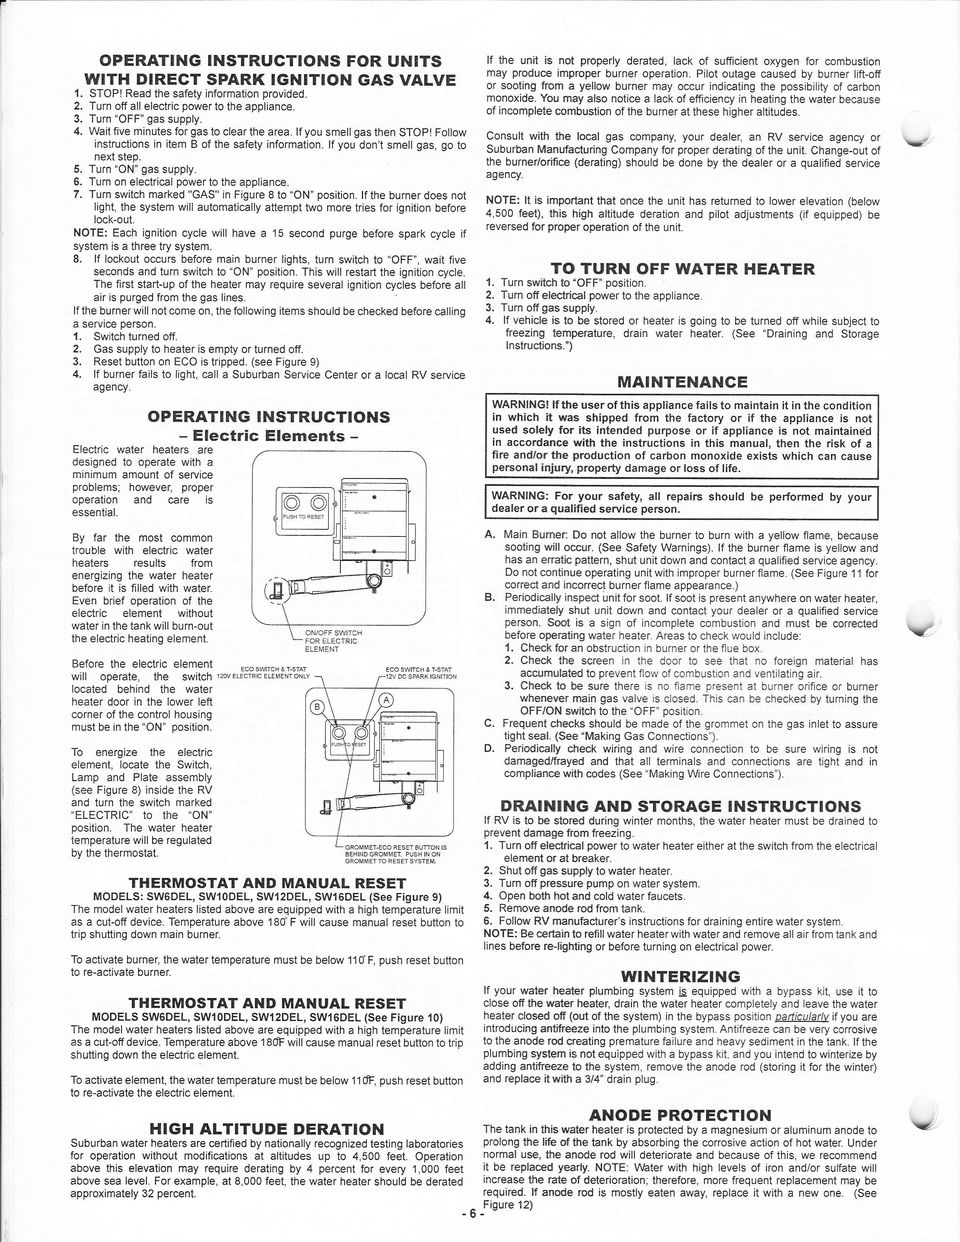 Suburban Installation And Operation Manual Direct Vent Gas Water Hot Heater Wiring Diagram Trn Switch Mrked In Igre